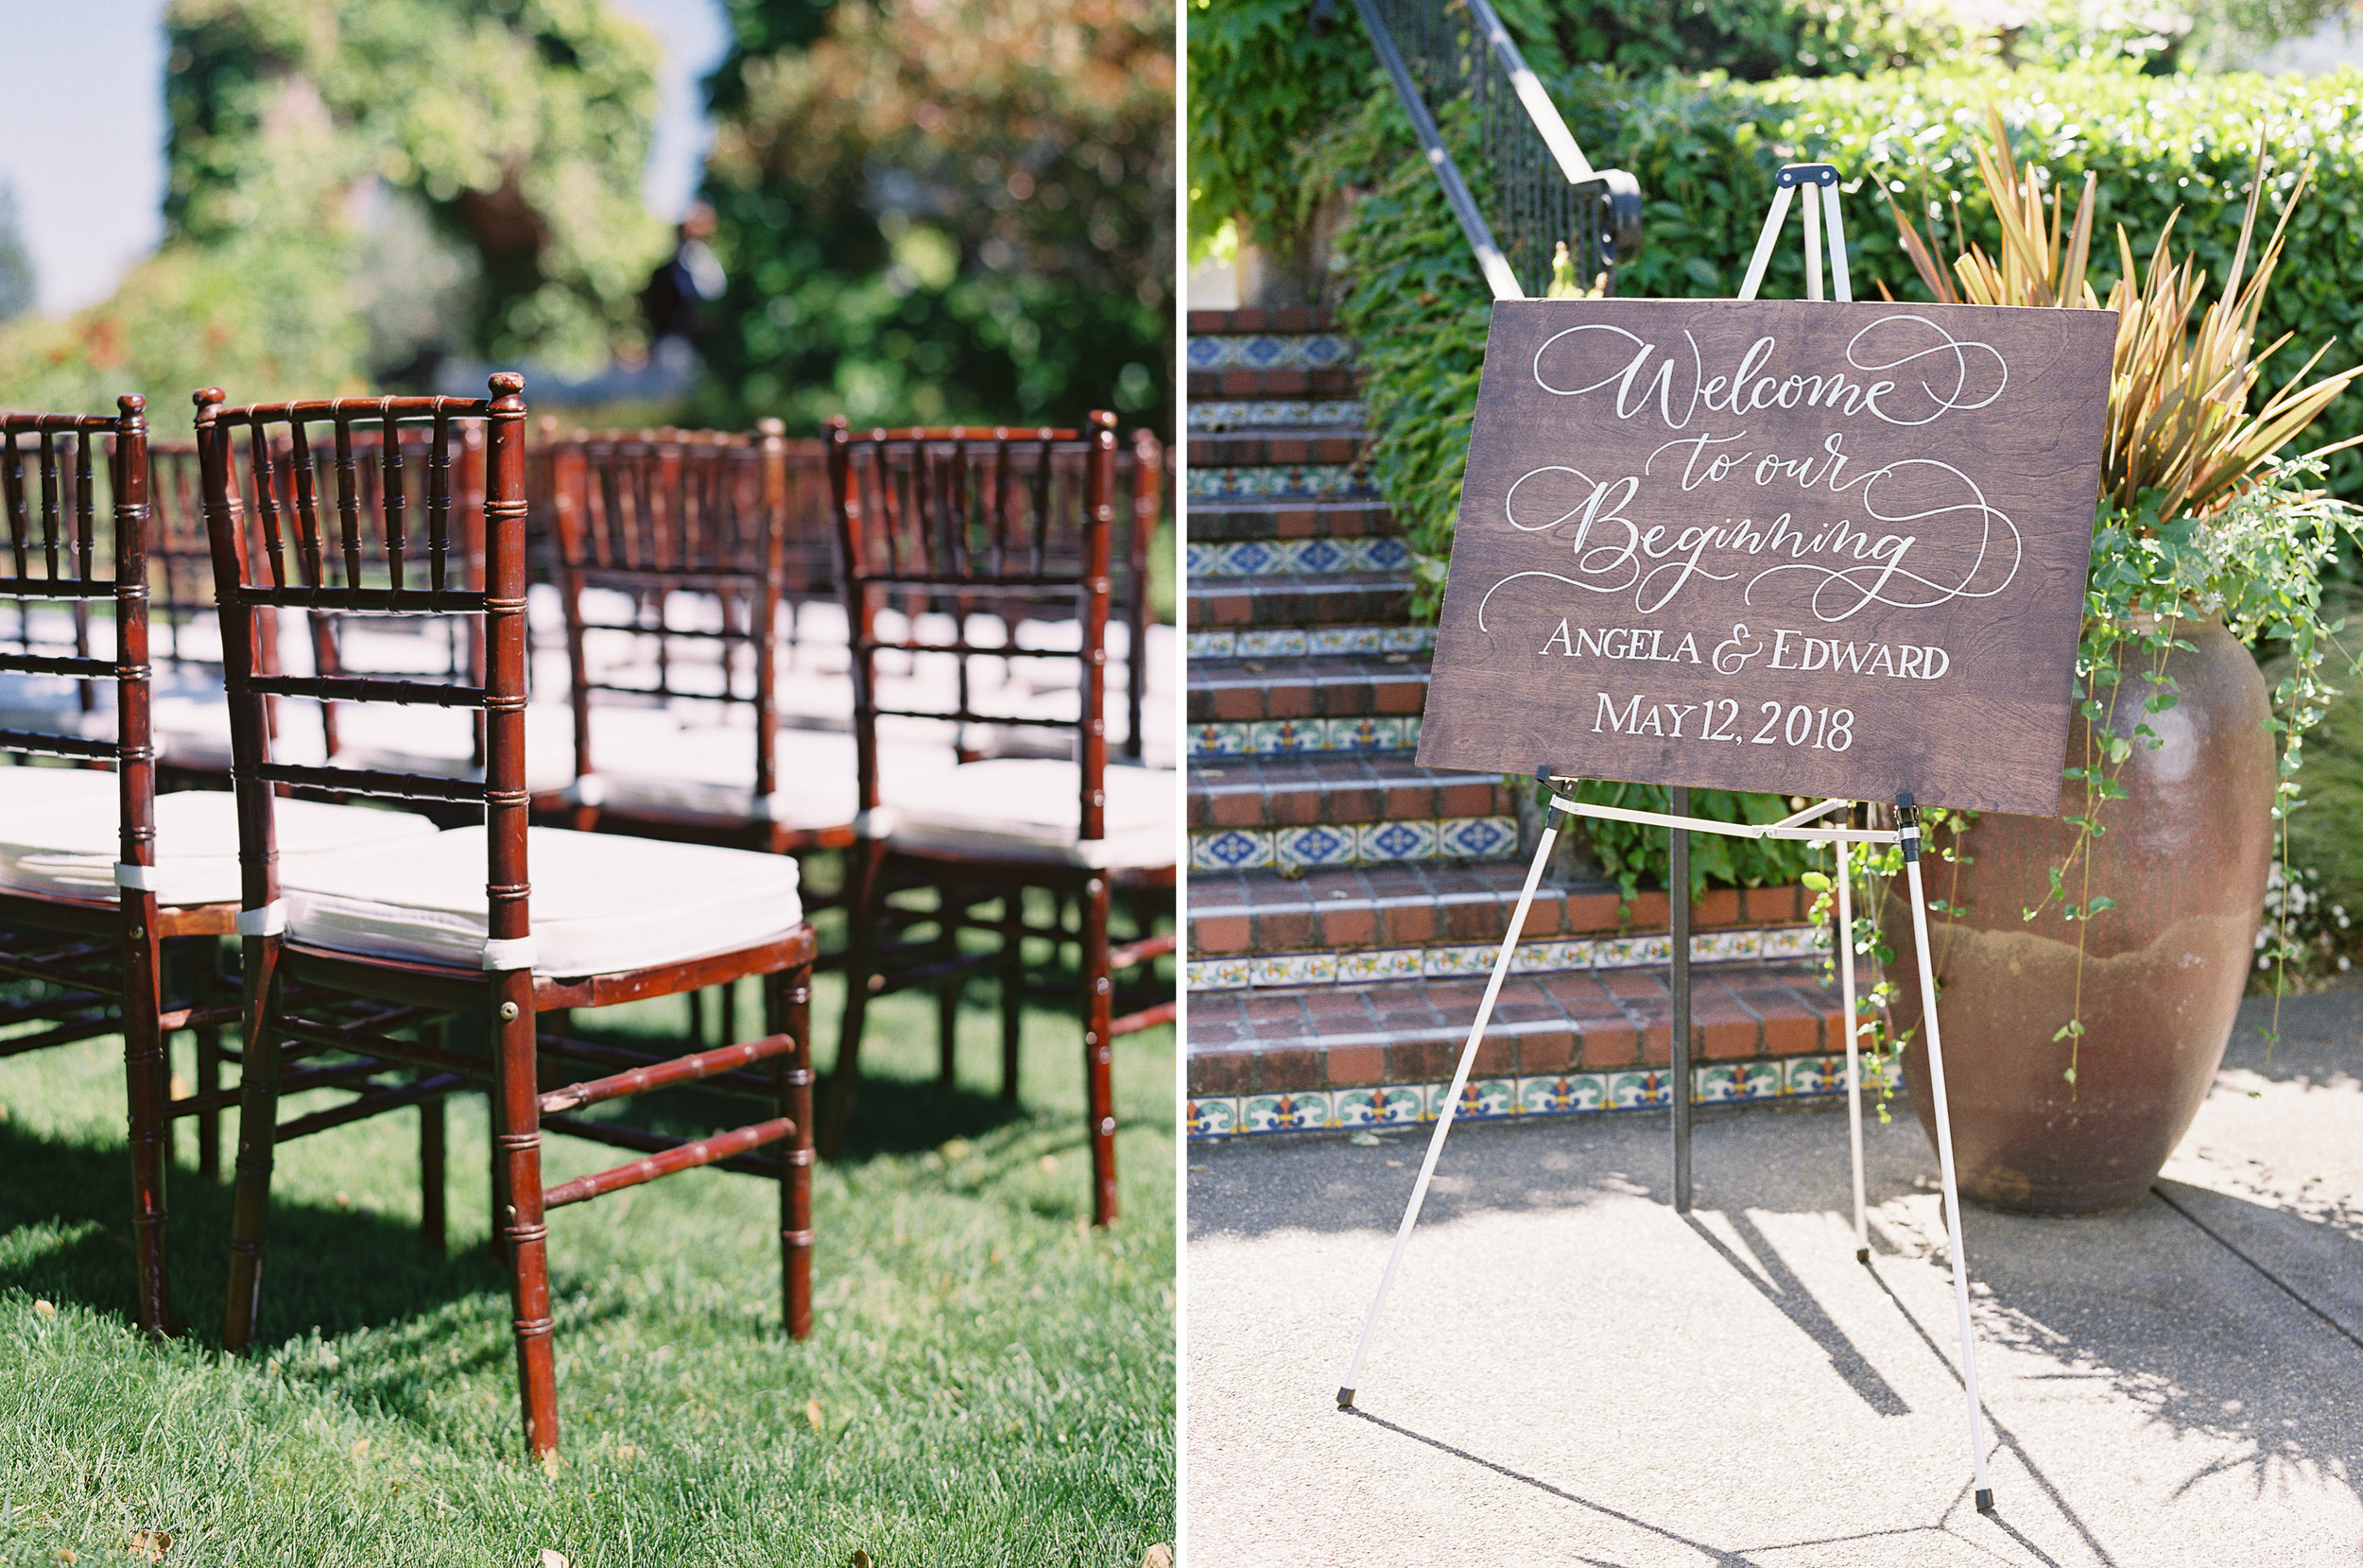 Meghan Mehan Photography - Sonoma Golf Club Wedding - California Film Wedding Photographer - 021.jpg